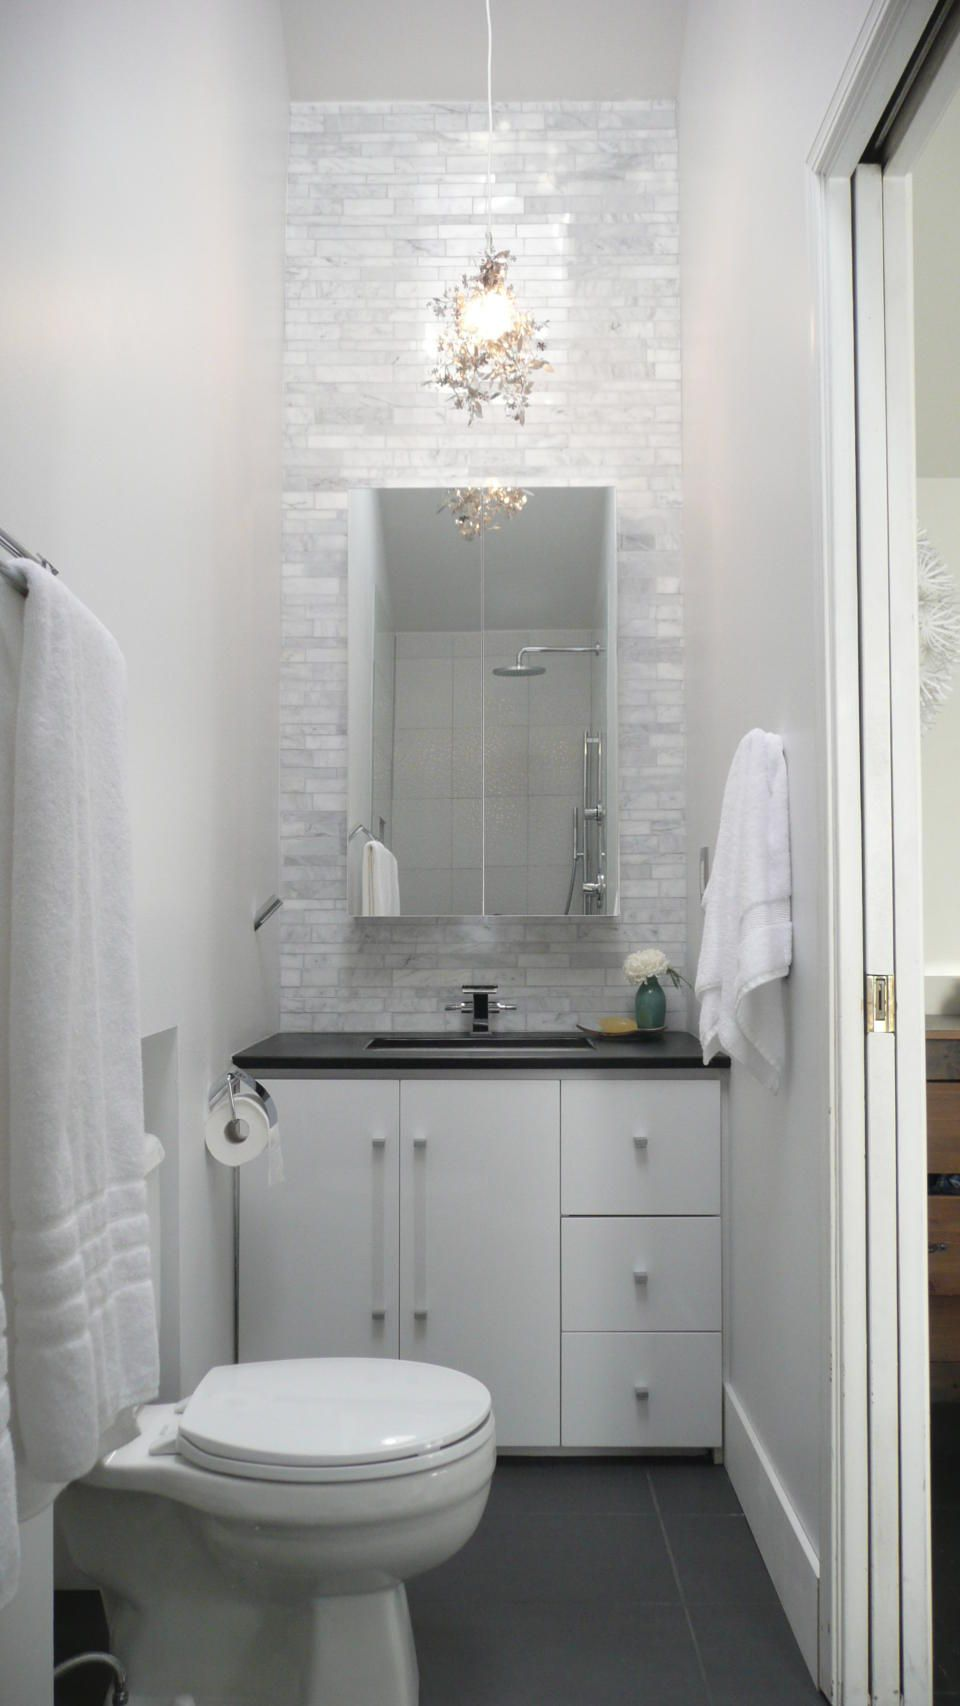 bathroom design blog. Modern Bathroom Design « Global Pacifique Group\u0027s Blog - Cut Out To Accommodate Toilet Or Wall